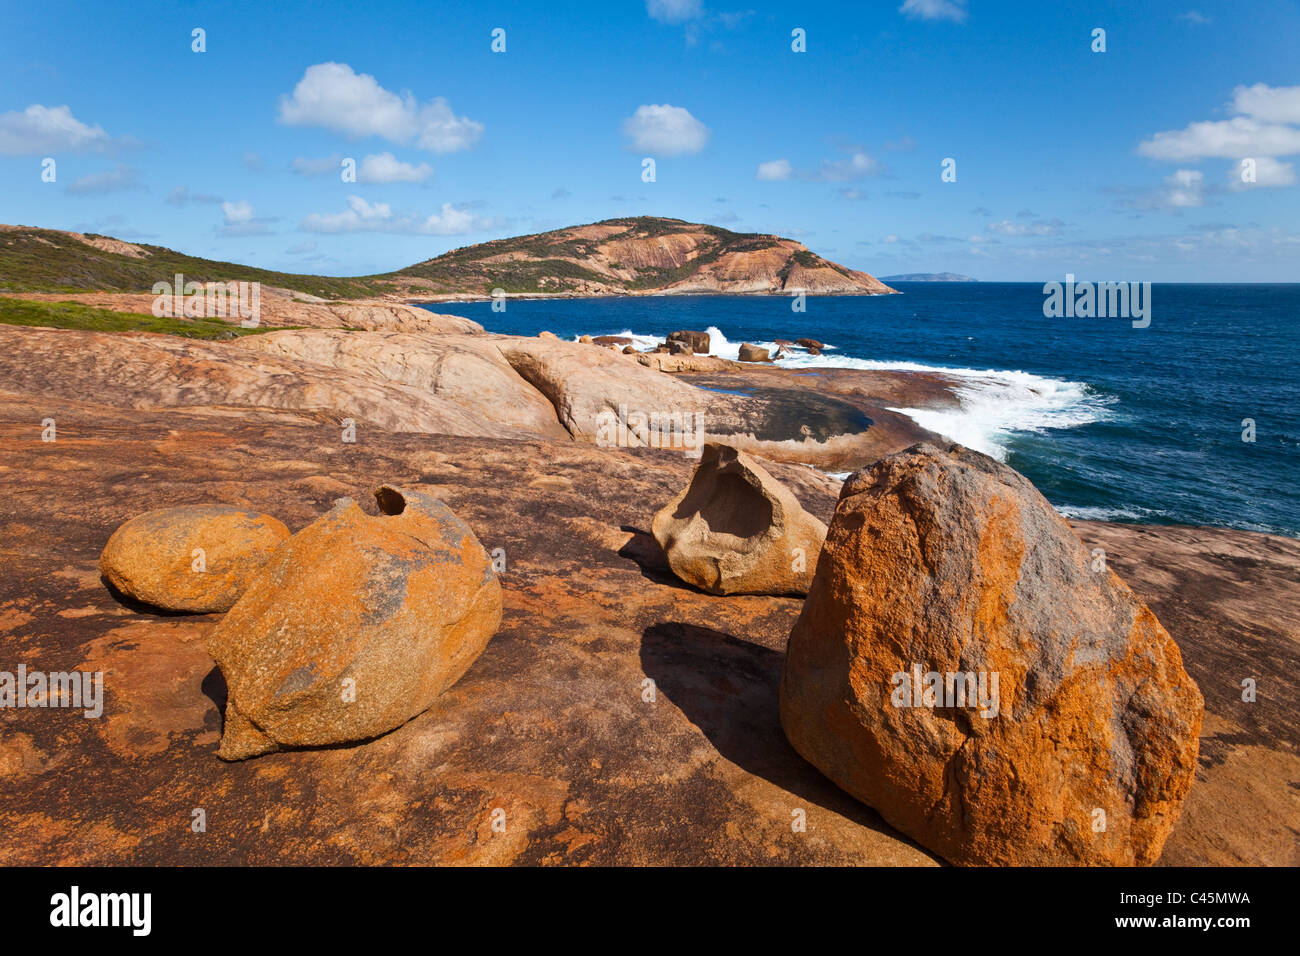 Rocky outcrops at Thistle Cove. Cape Le Grand National Park, Esperance, Western Australia, Australia - Stock Image